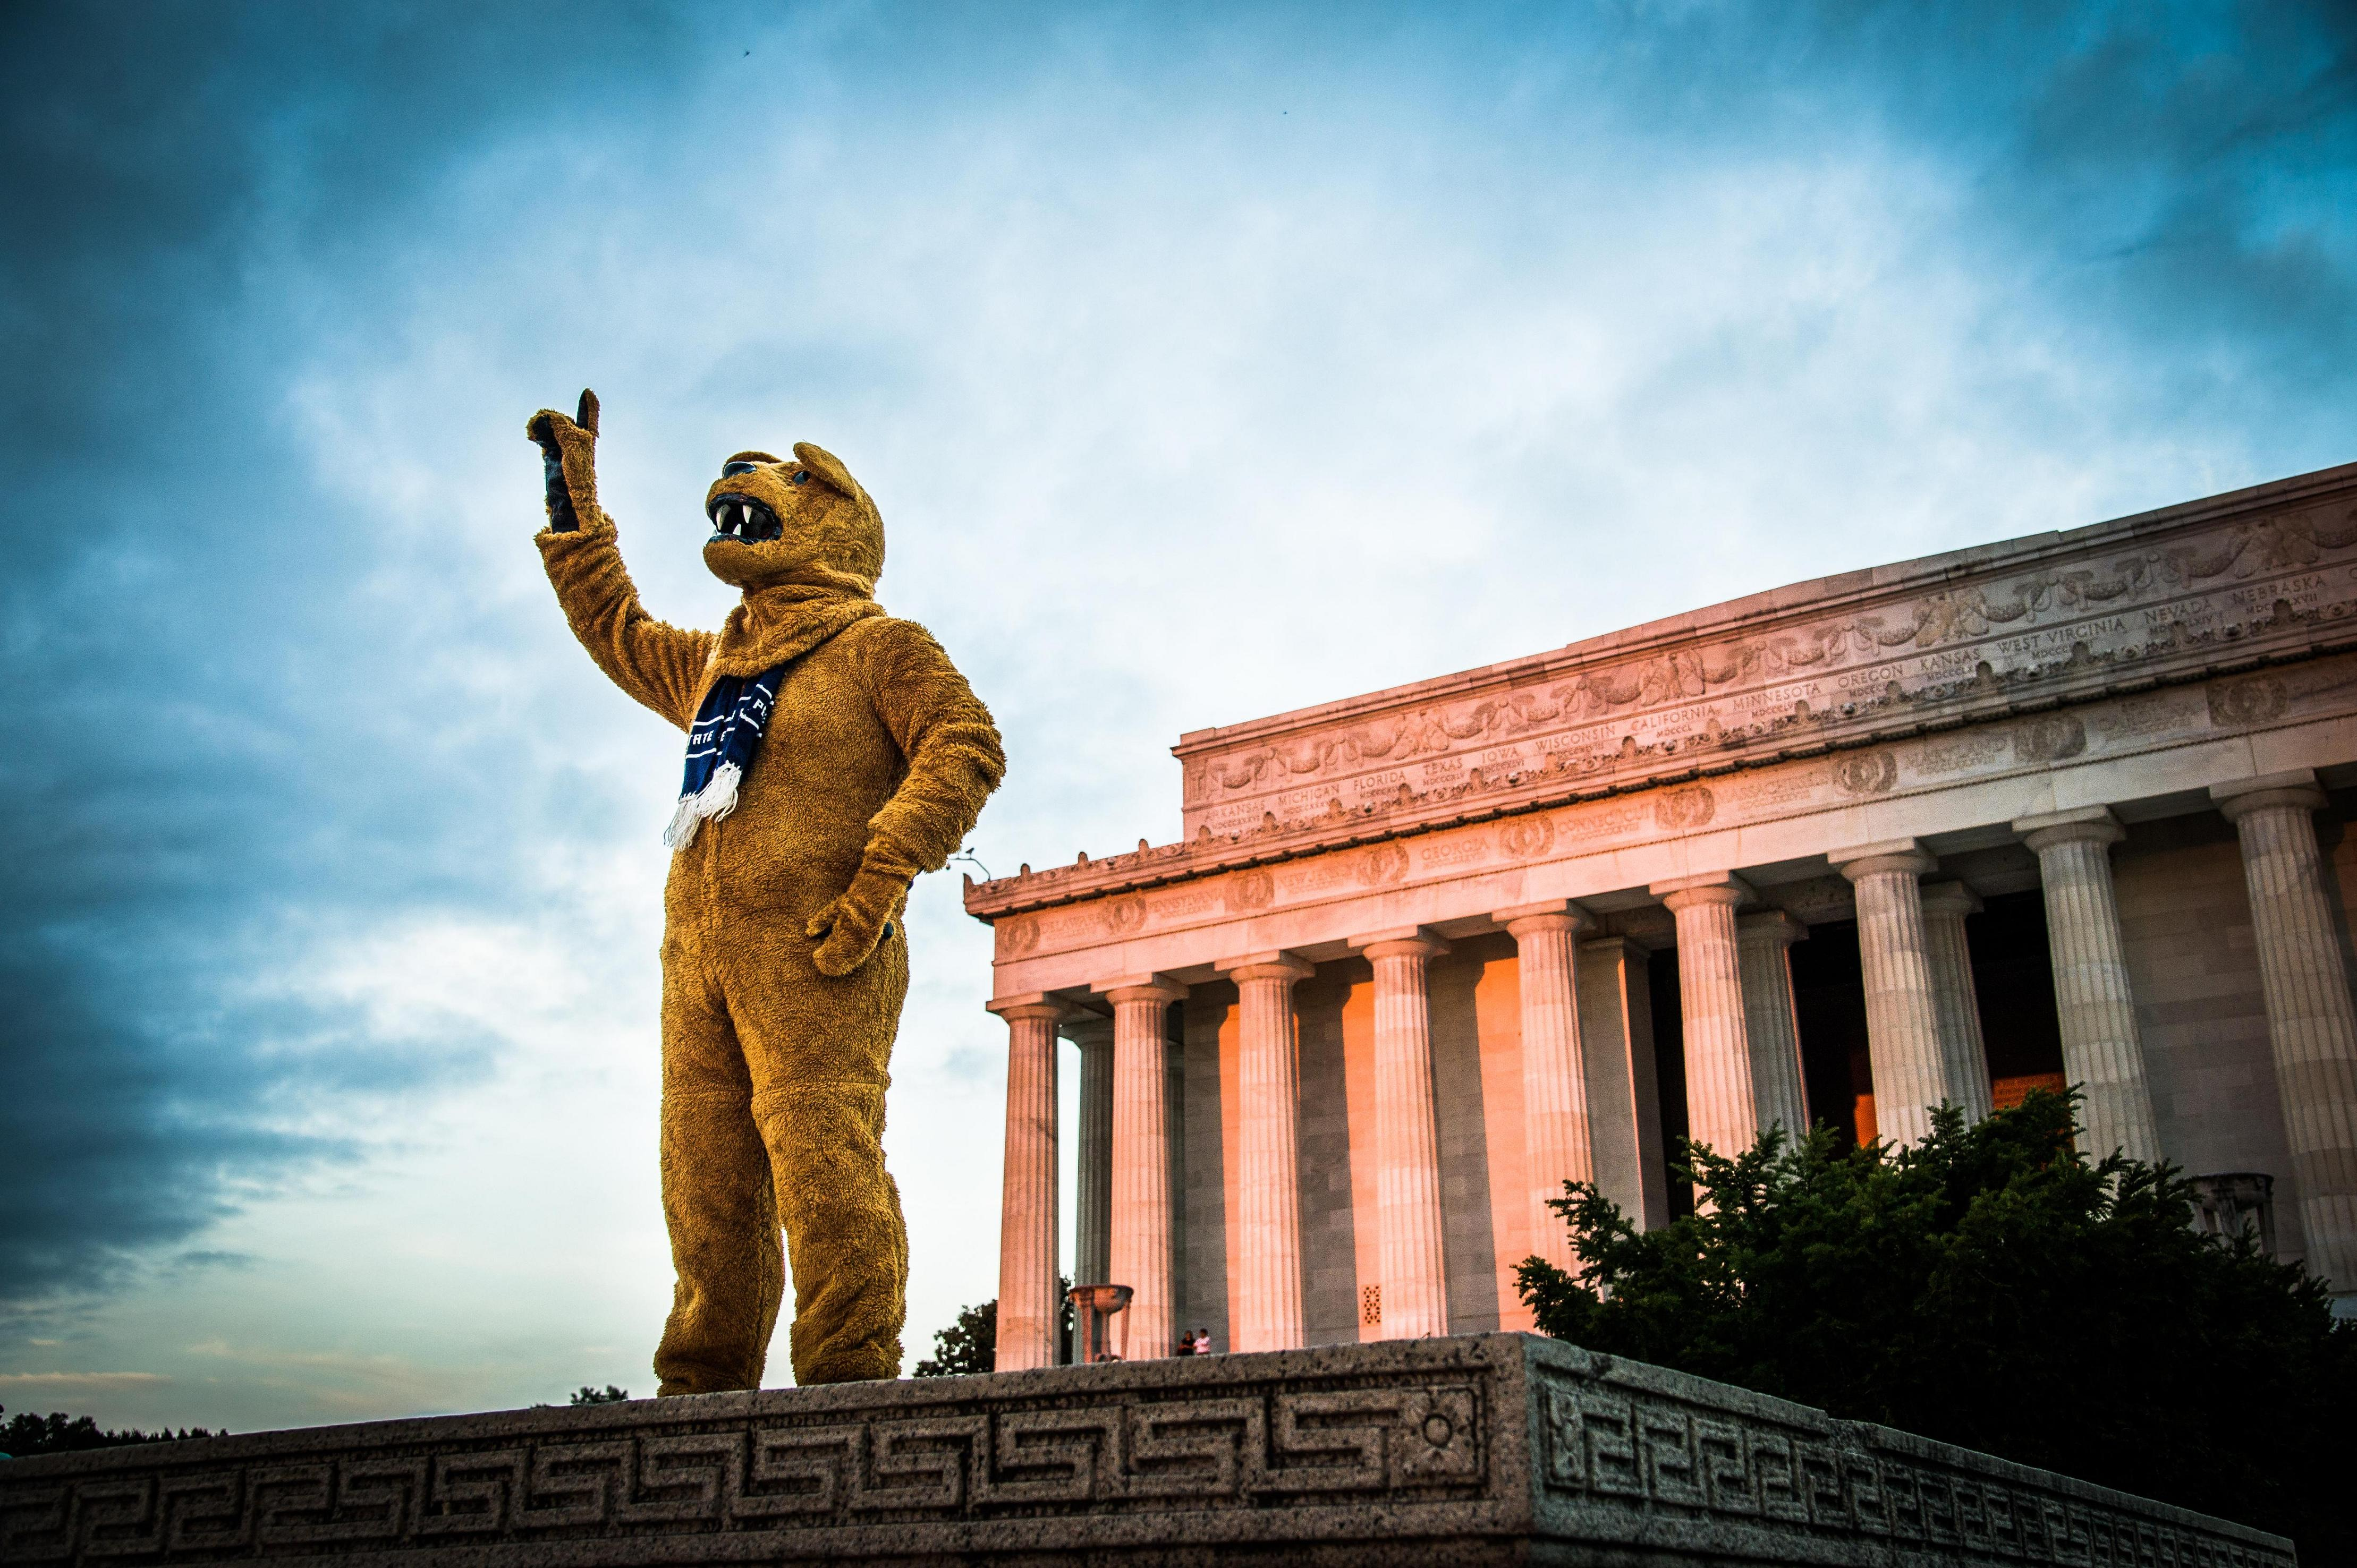 penn-state-nittany-lion-in-dc-by-len-spoden--4